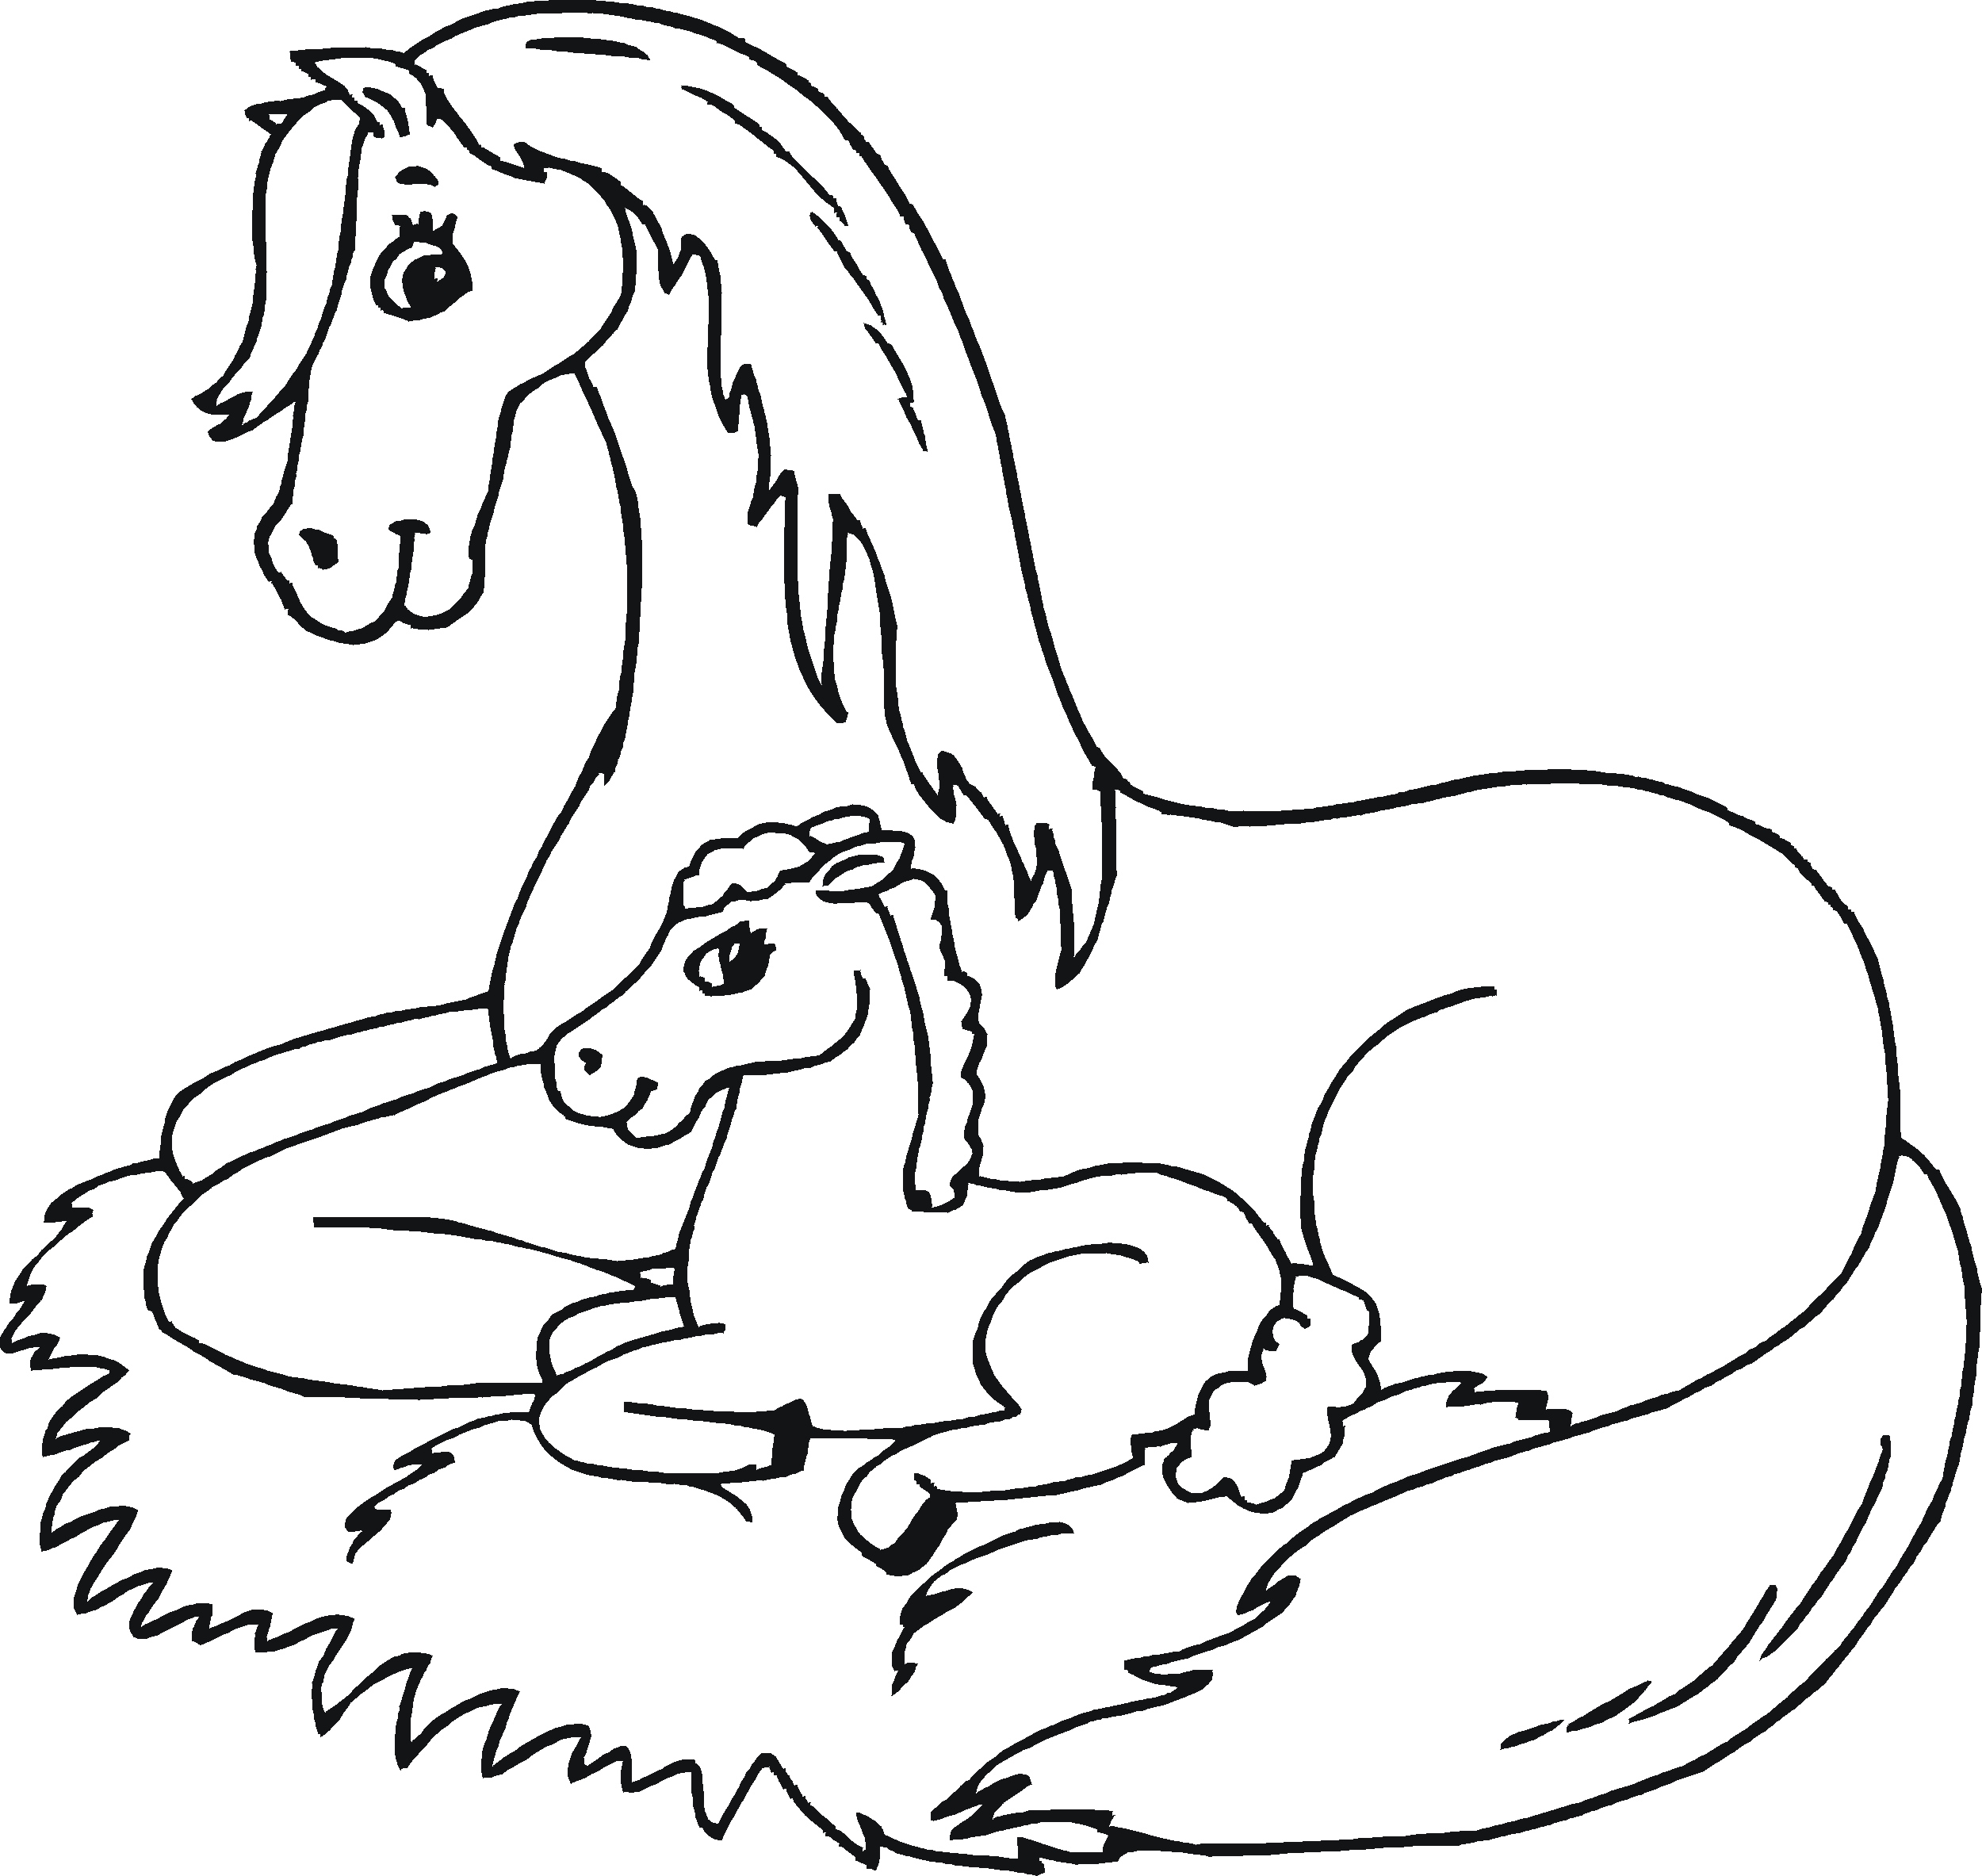 coloring pages of horse horse coloring pages for adults best coloring pages for kids of horse pages coloring